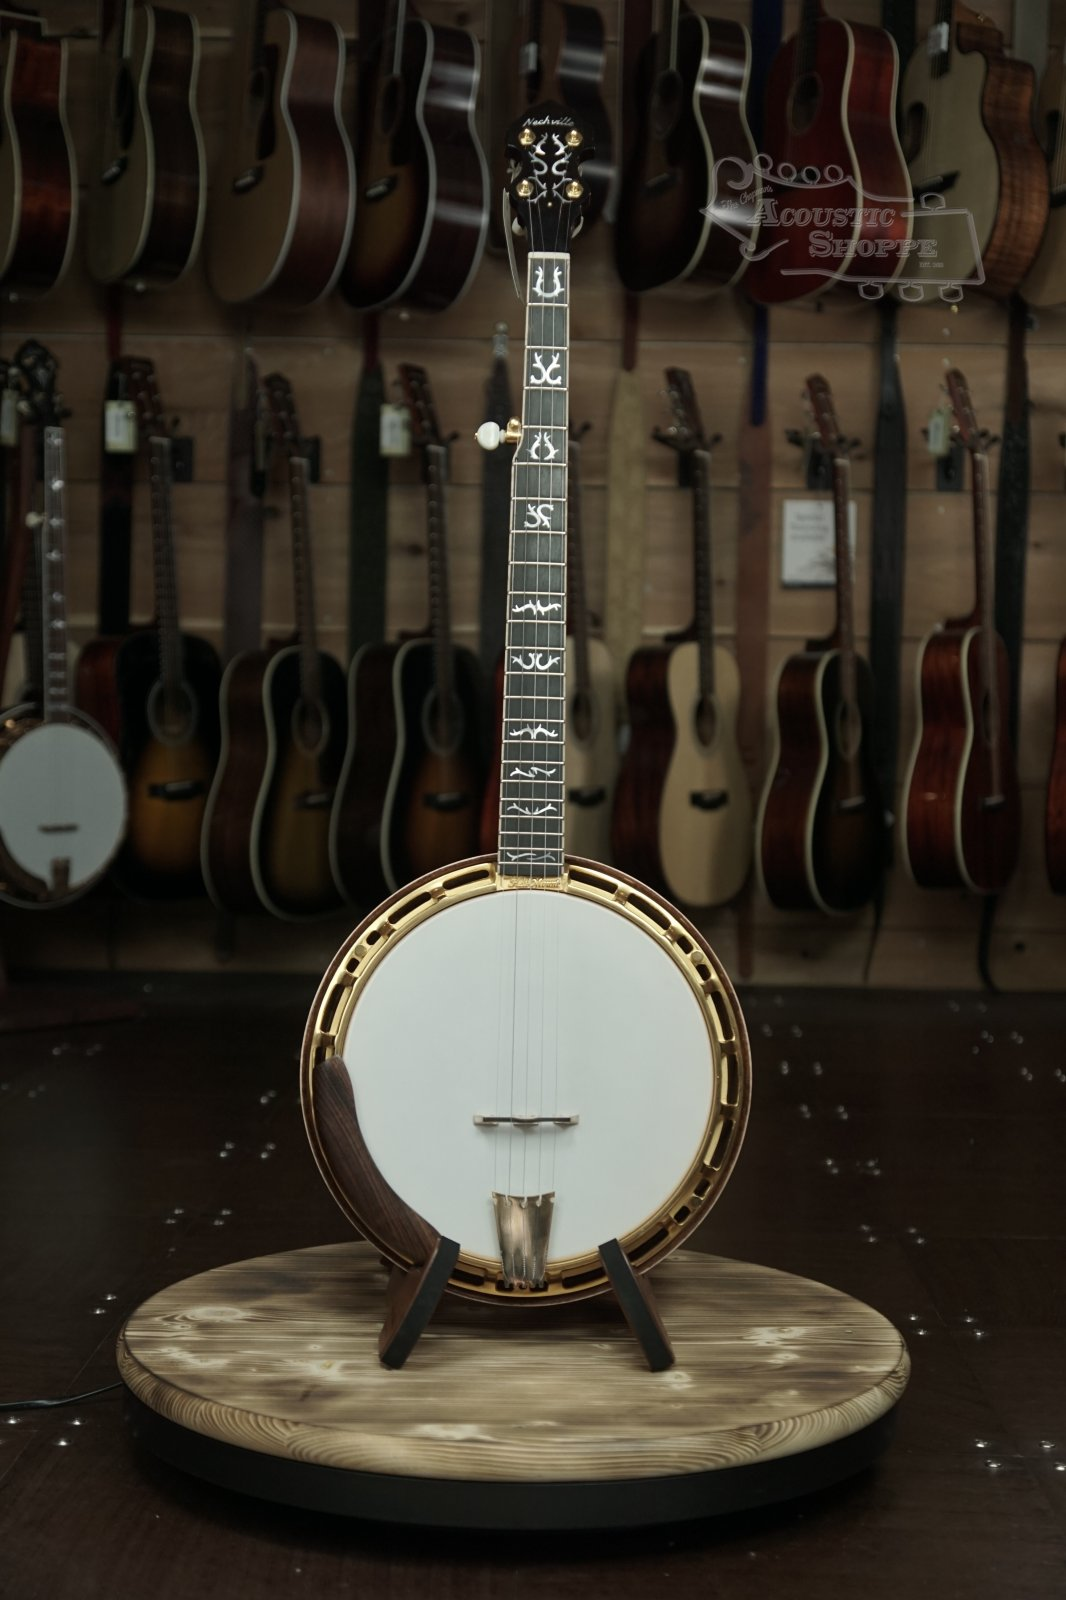 Nechville Gold Orion #2287 Curly Maple Resonator Banjo w/ Heli-Mount Frame and Antler Inlays